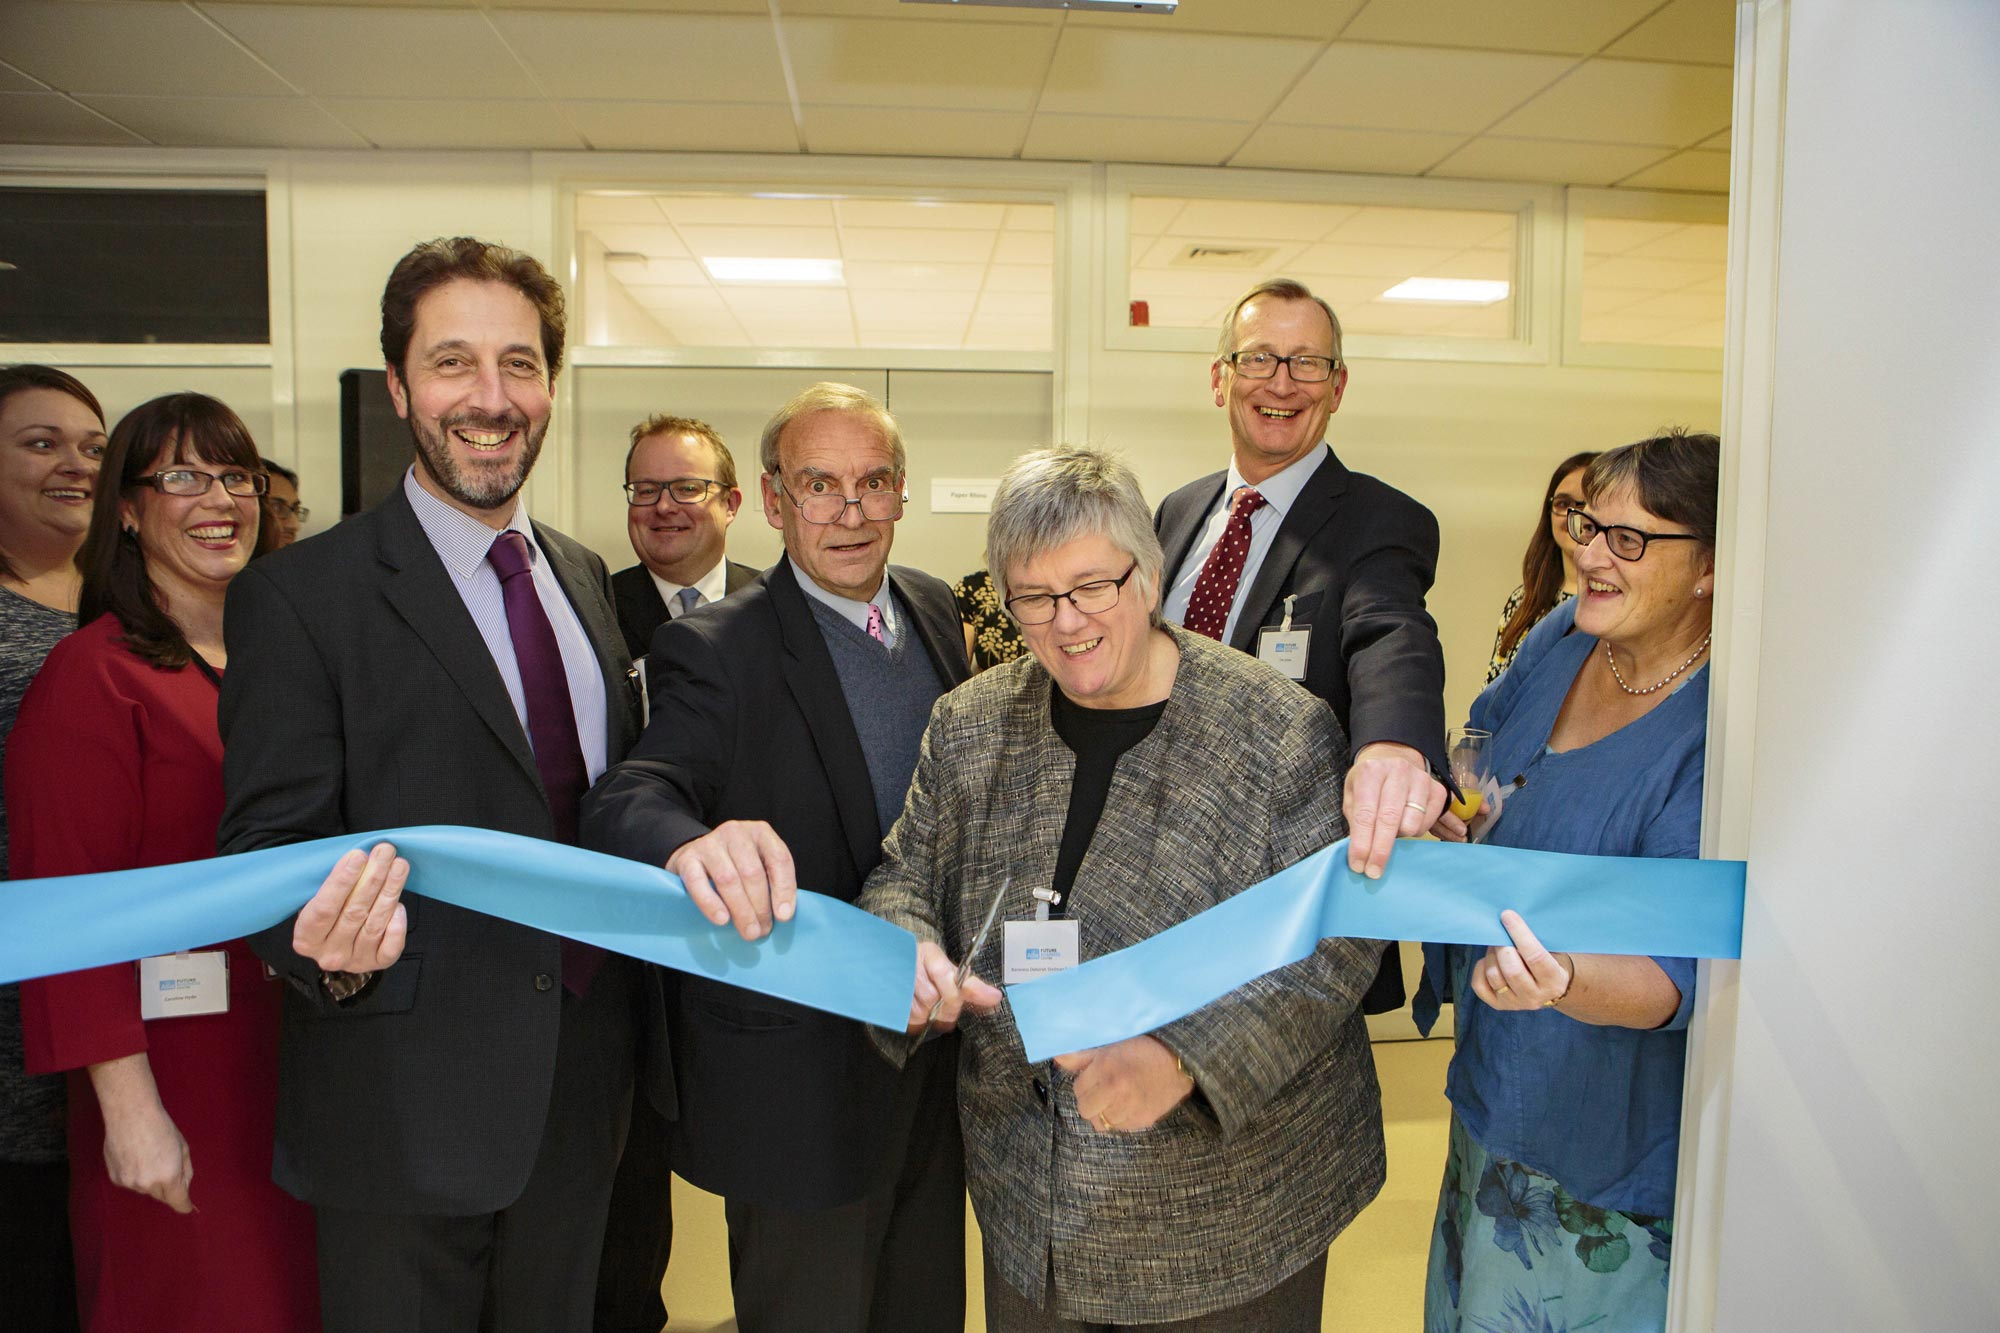 State-of-the-art Innovation Lab opens at Allia Future Business Centre, Peterborough